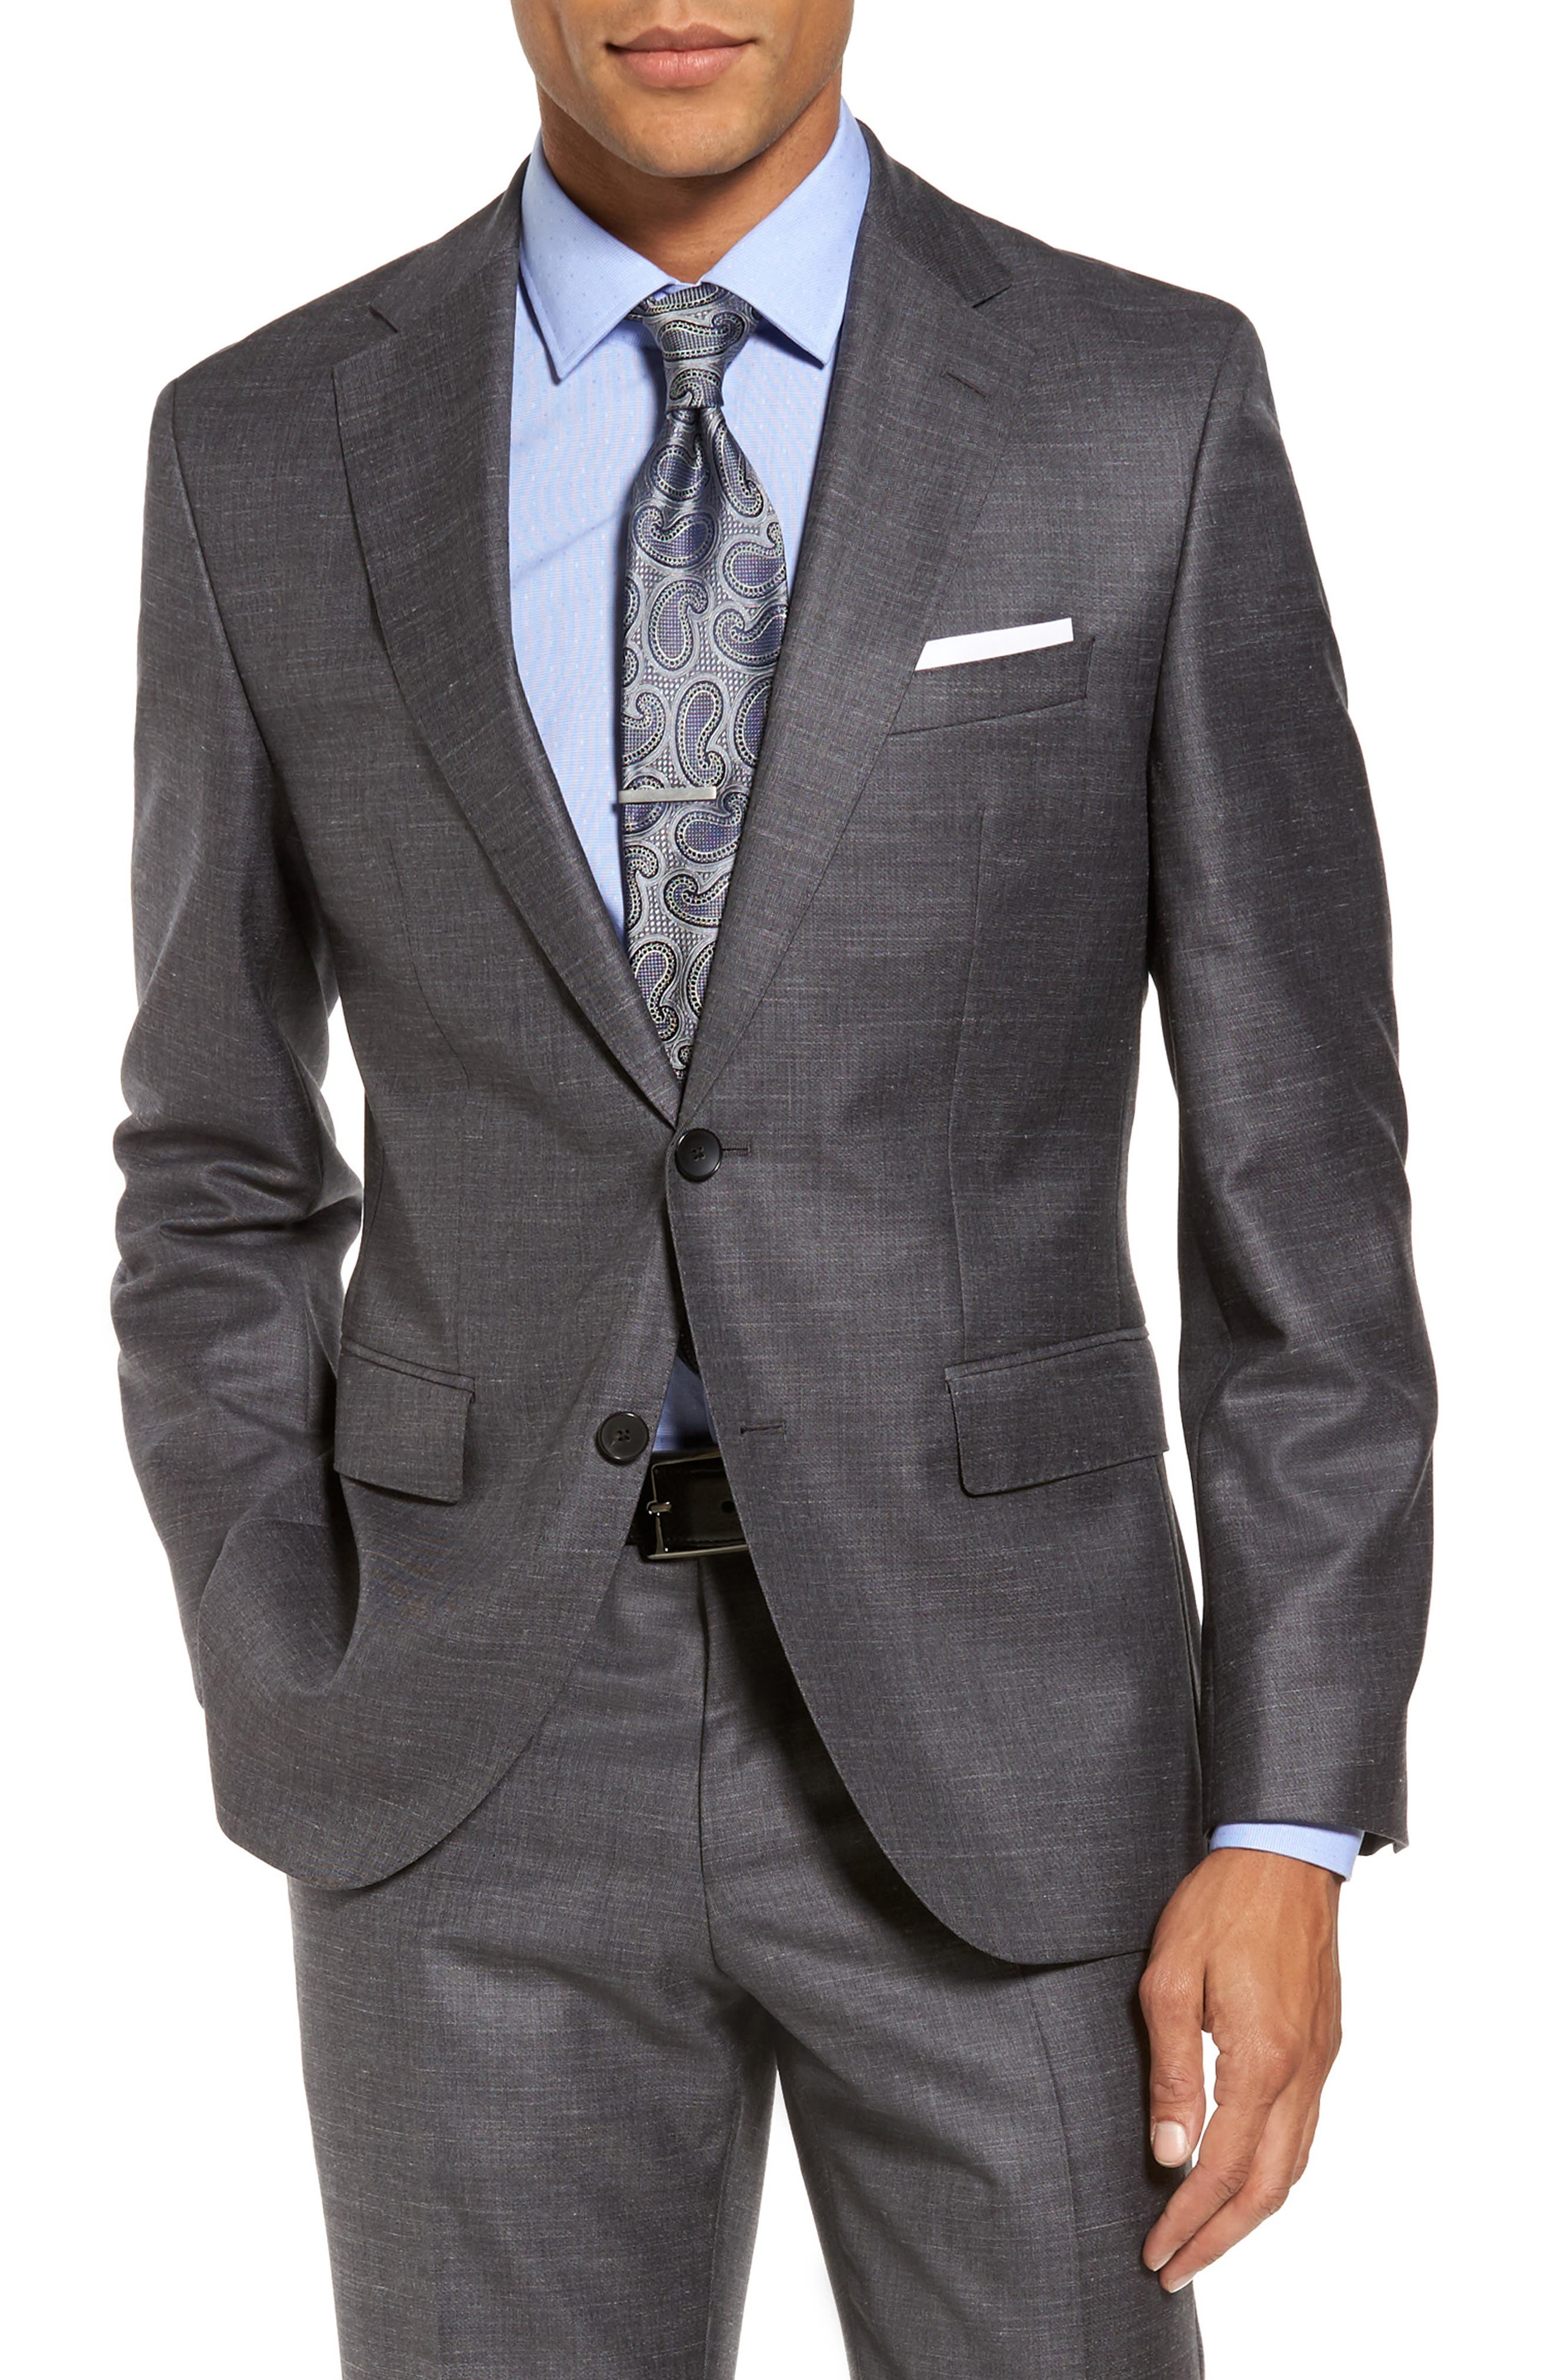 Johnstons/Lenon Classic Fit Solid Wool Blend Suit,                             Alternate thumbnail 5, color,                             061